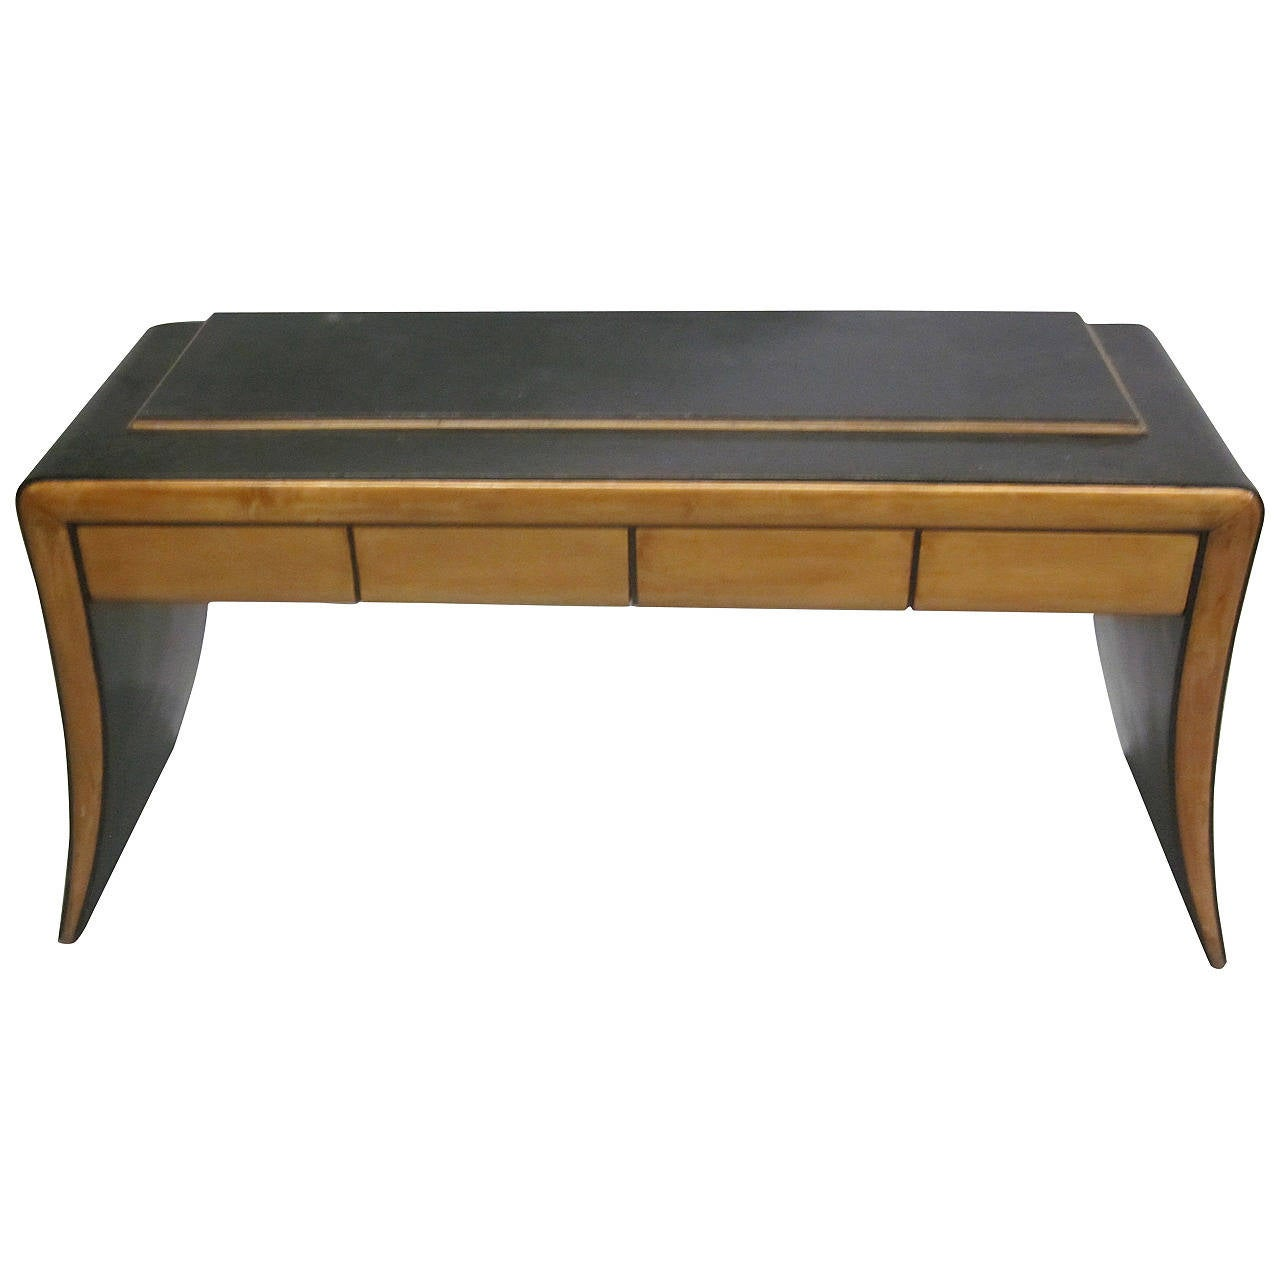 Italian Mid-Century Modern Neoclassical Vanity / Sofa Table by Paolo Buffa, 1930 1